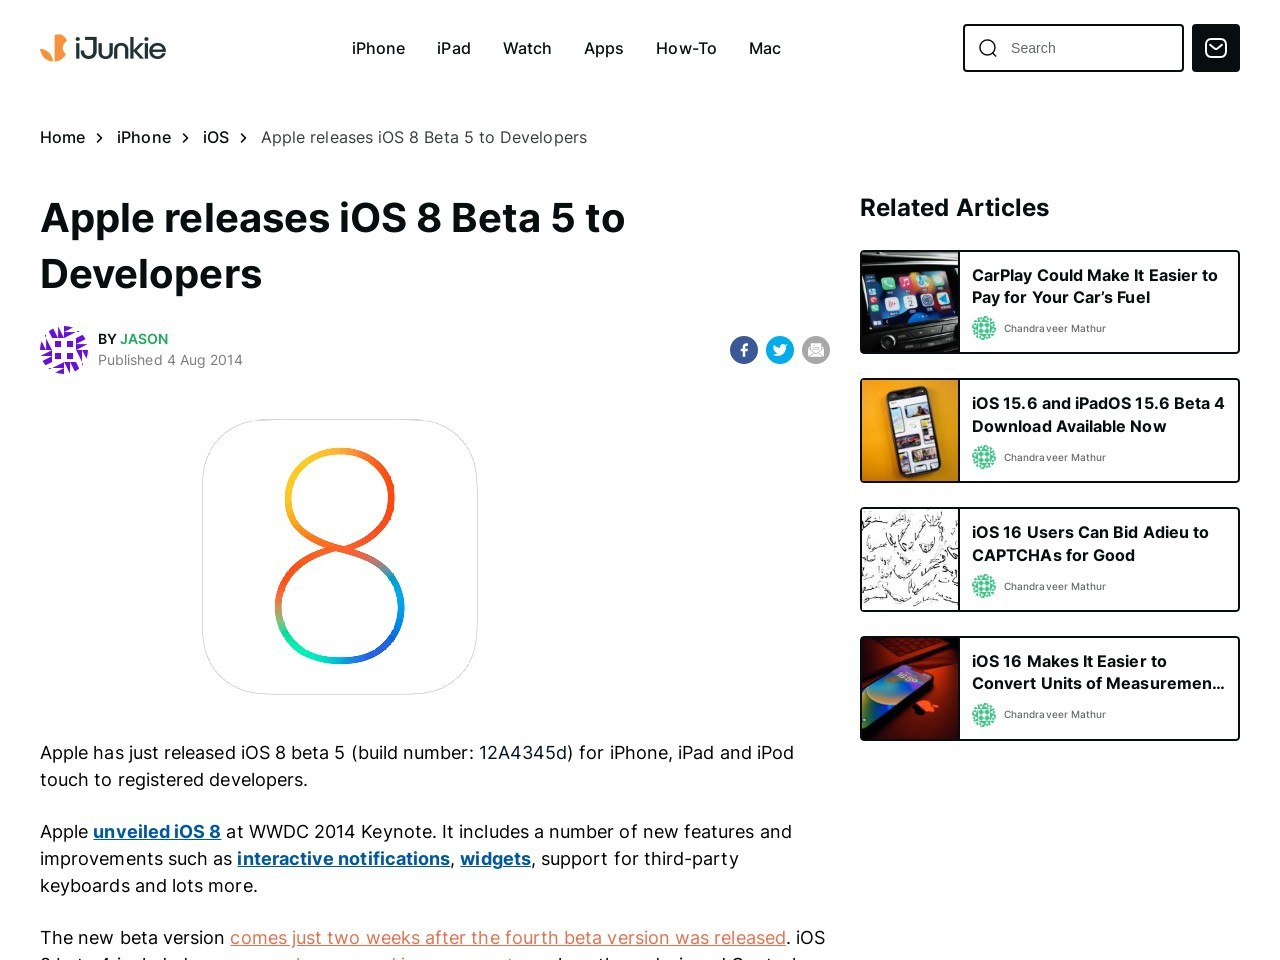 iOS 8 beta 5 Download for iPhone, iPad, iPod touch